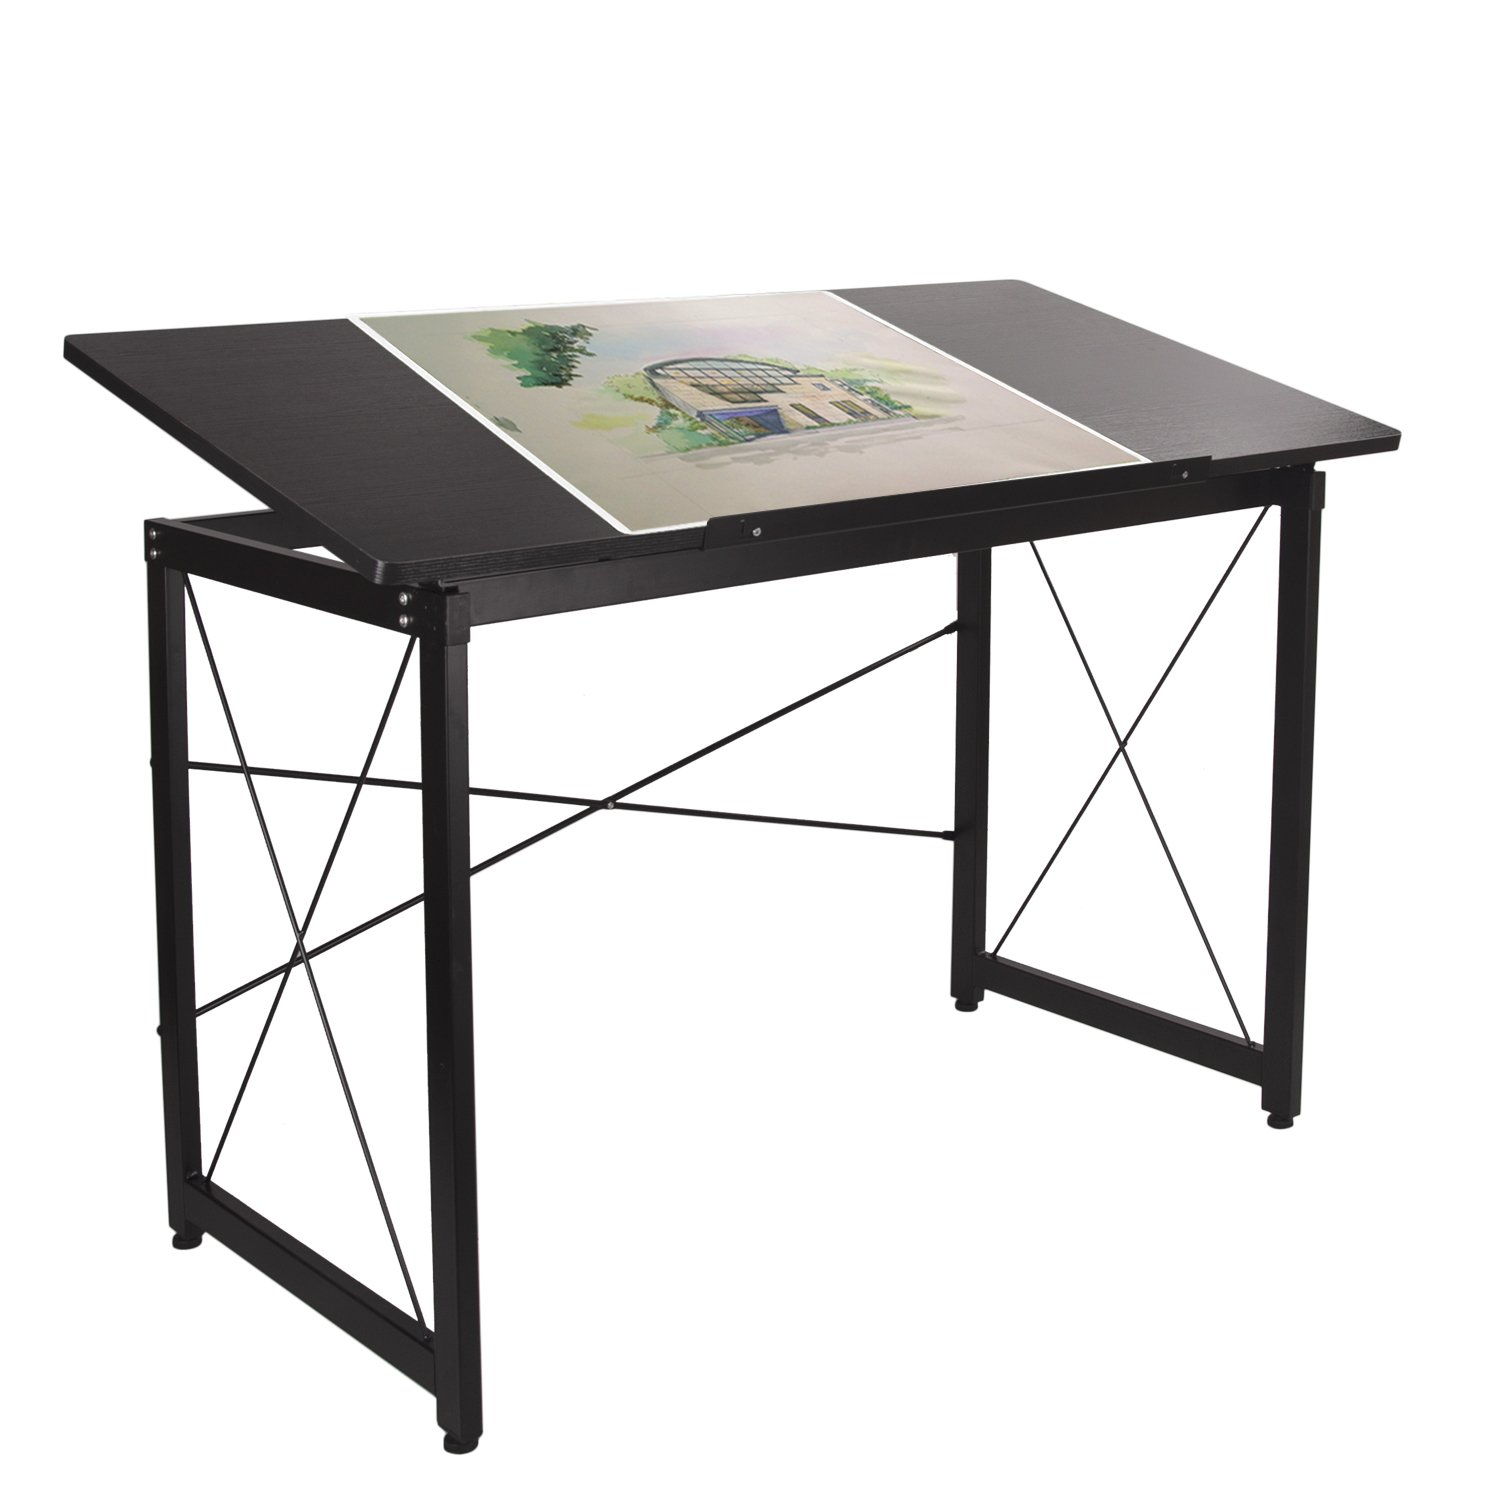 H&A 47''x 24'' Tiltable Drawing Desk Drafting Table Wood Surface Craft Station Versatile for Painting Writing Studying and Reading